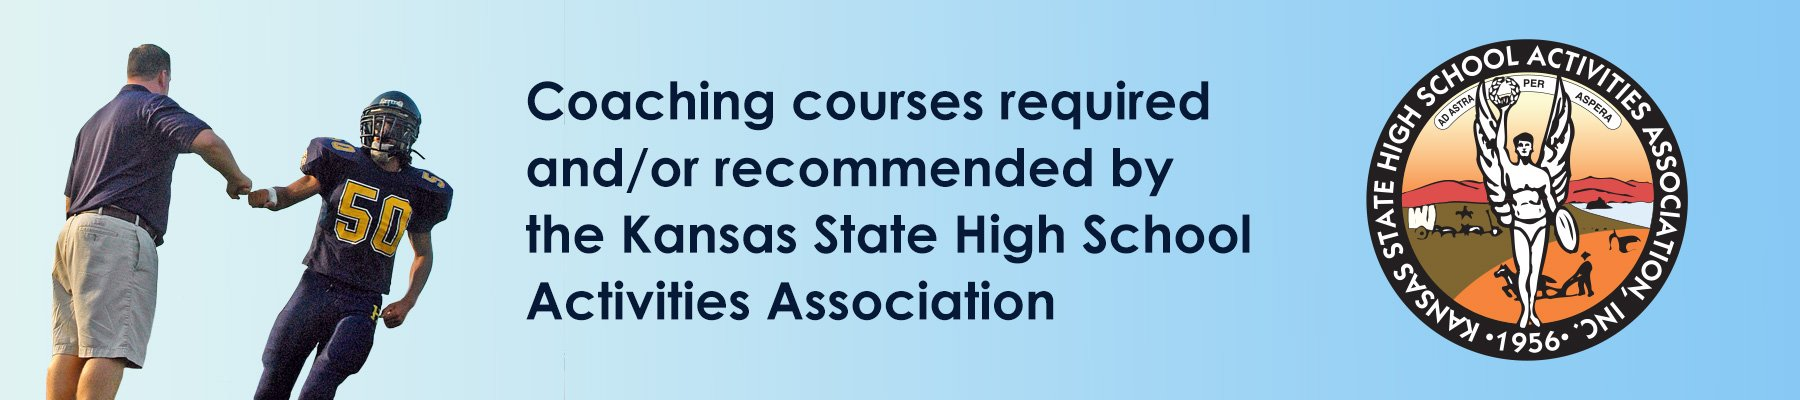 Kansas State High School Activities Association